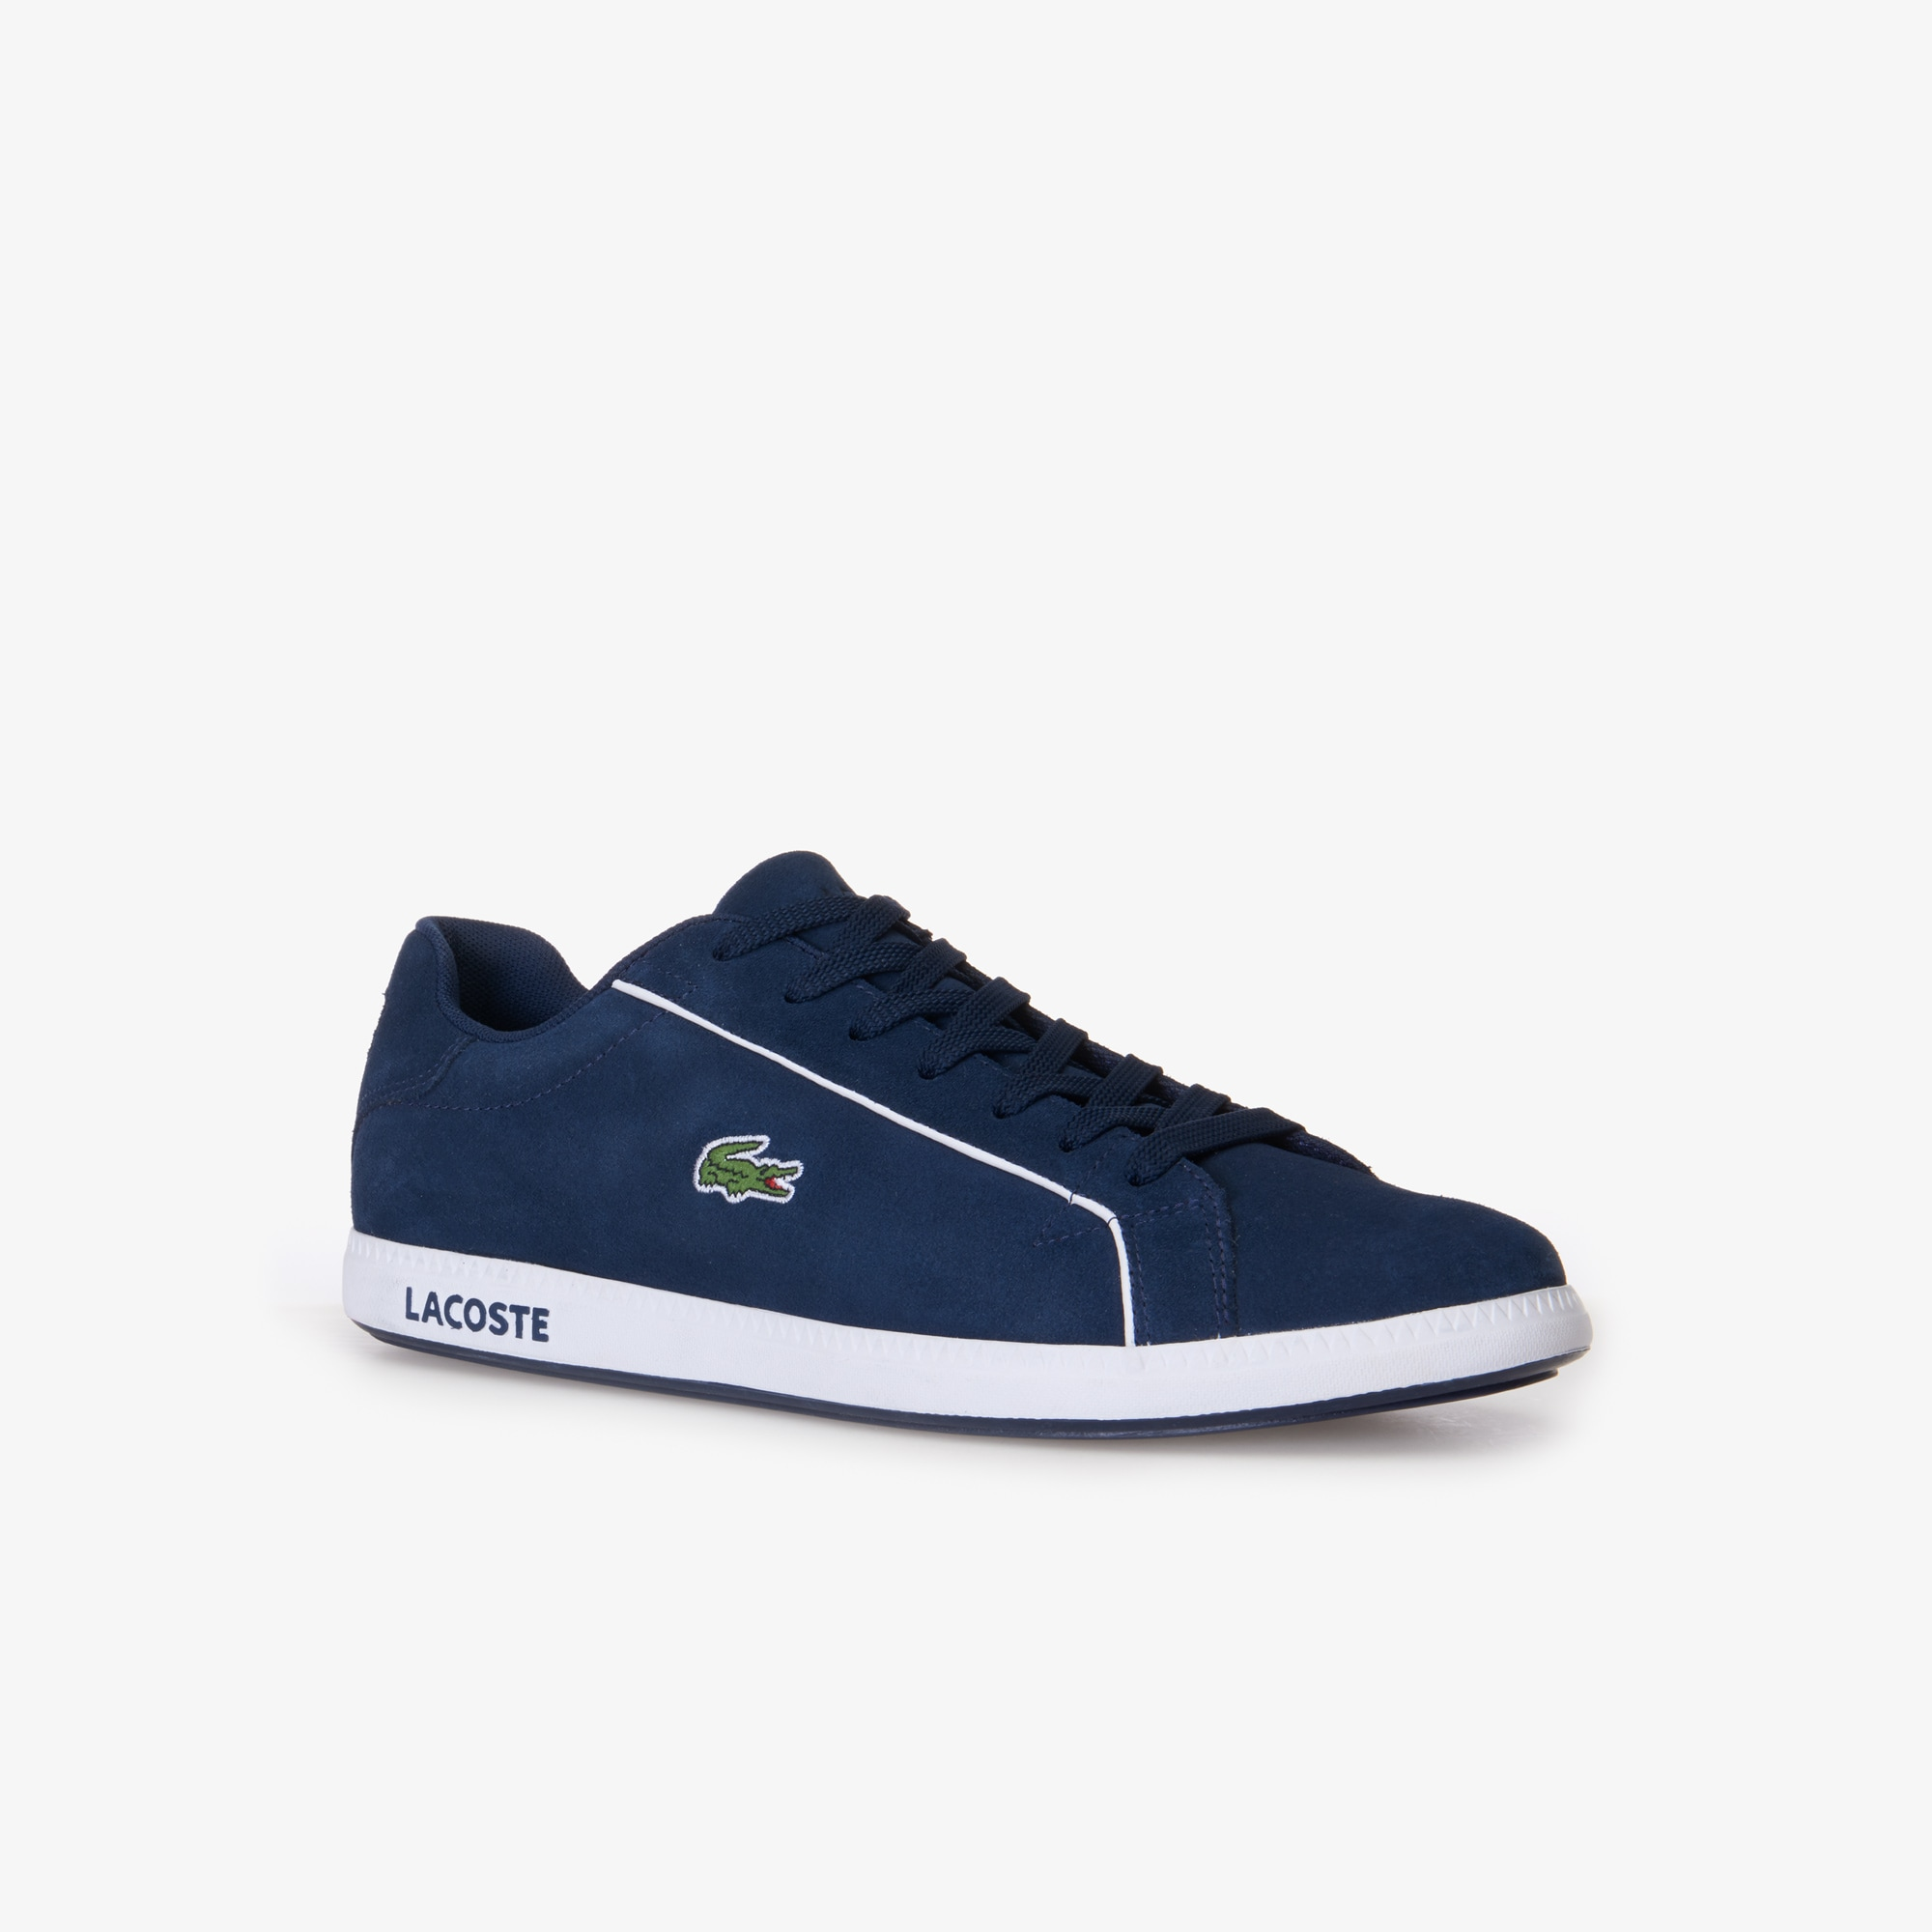 7741d9ae65 Toutes les chaussures | Chaussures Homme | LACOSTE